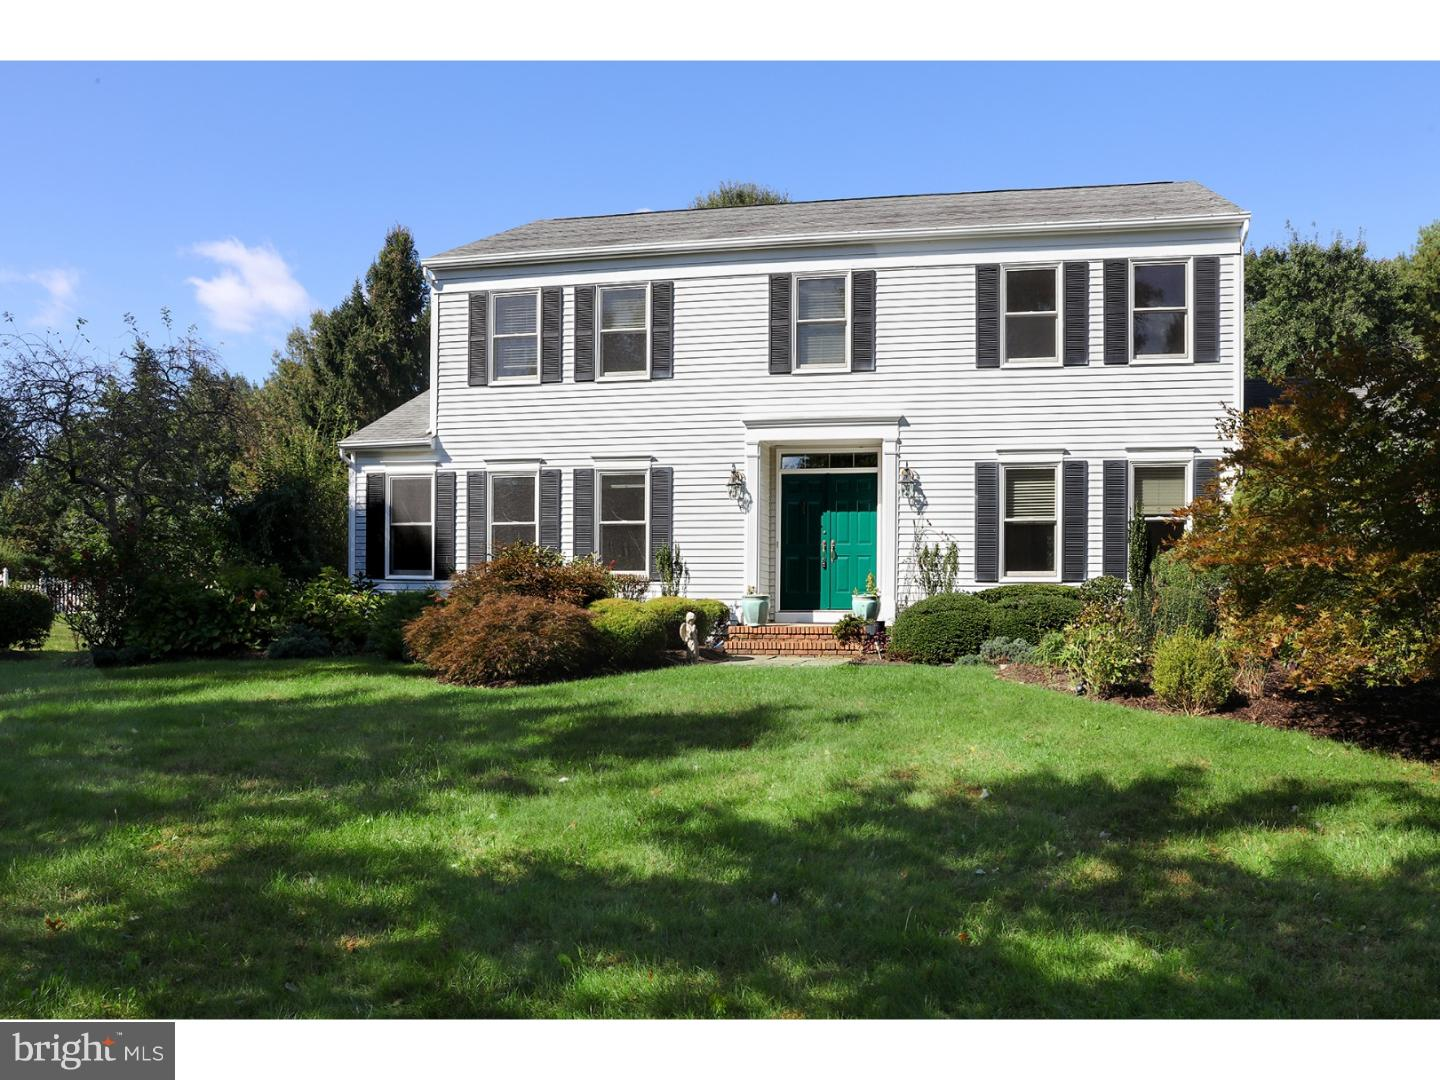 35 WASHINGTON DRIVE, CRANBURY, NJ 08512